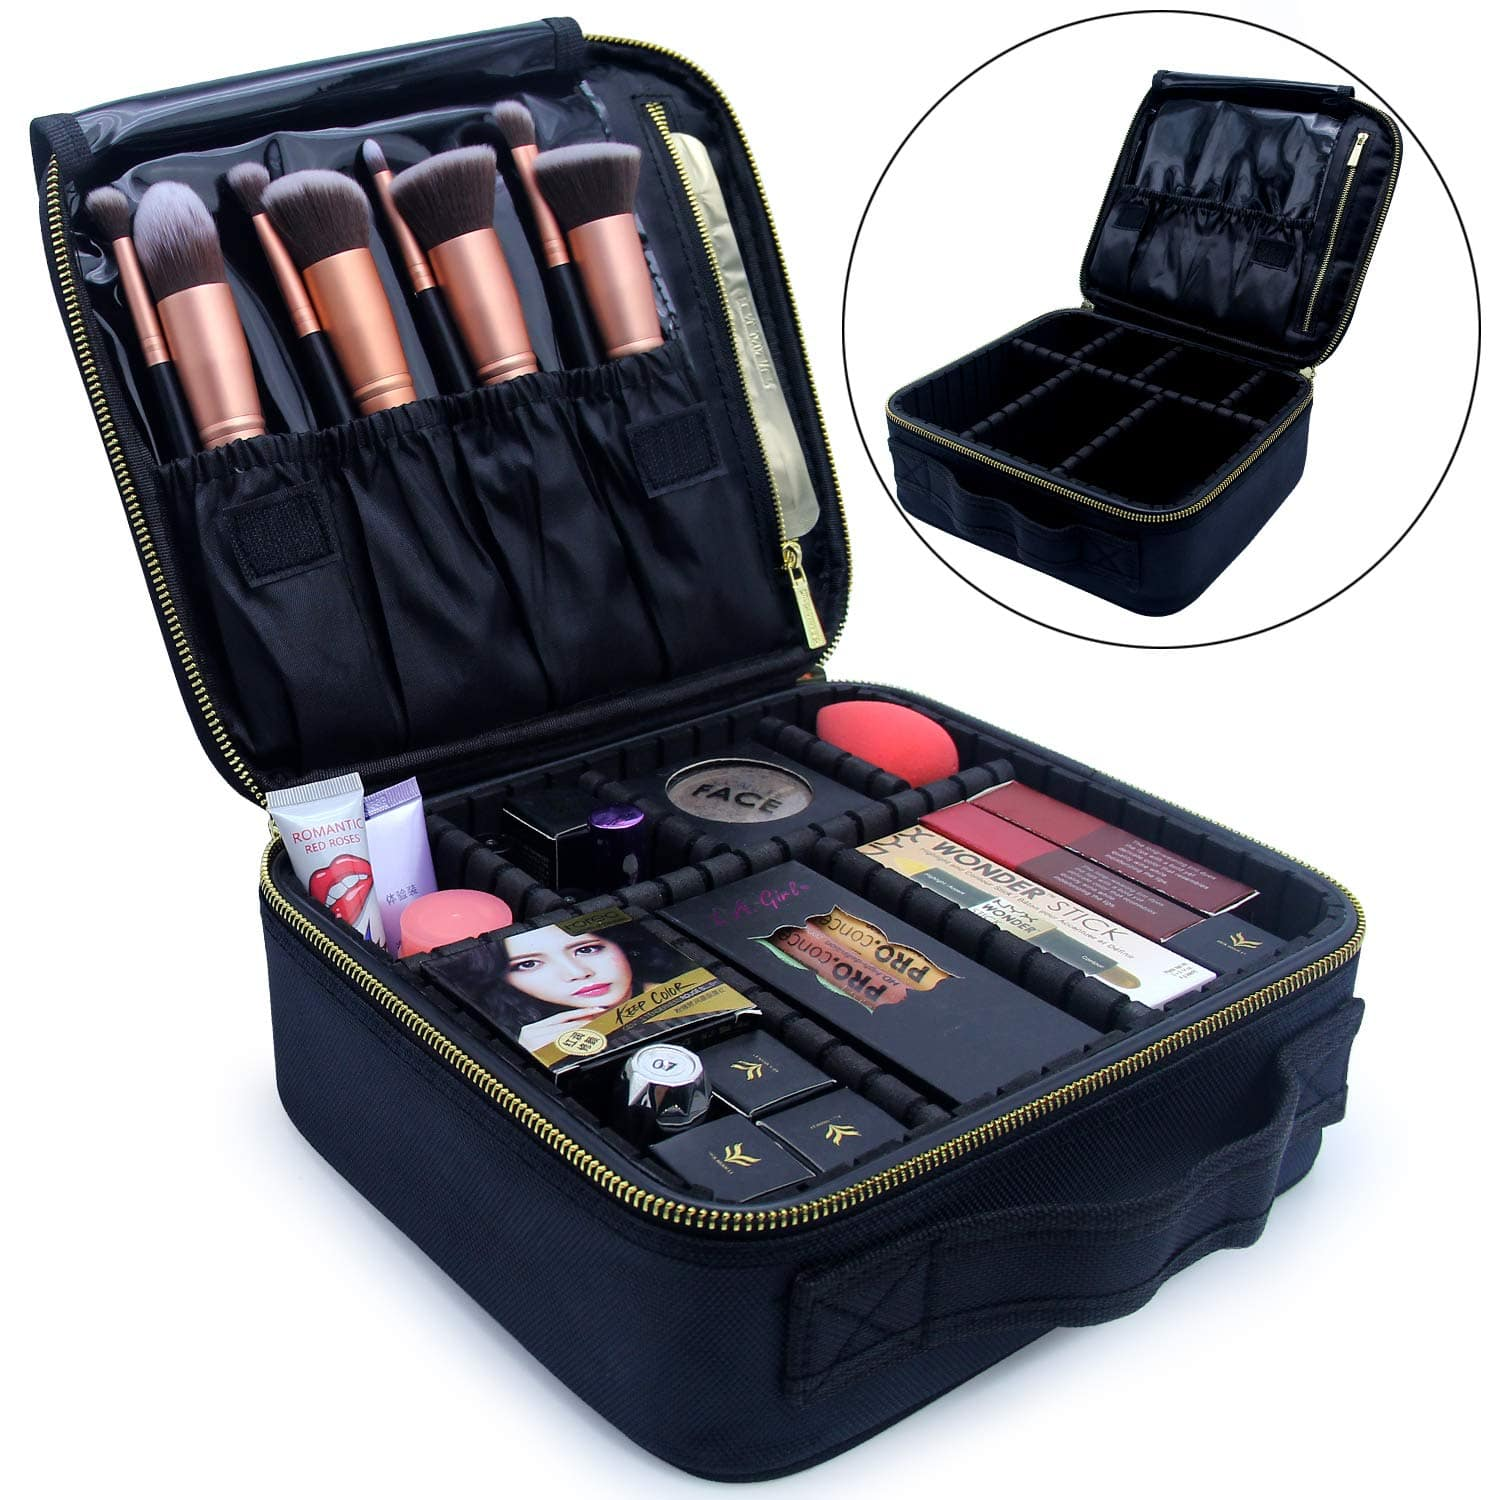 ff9bc32493b8 Relavel Portable Travel Makeup Train Case with Adjustable Dividers ...